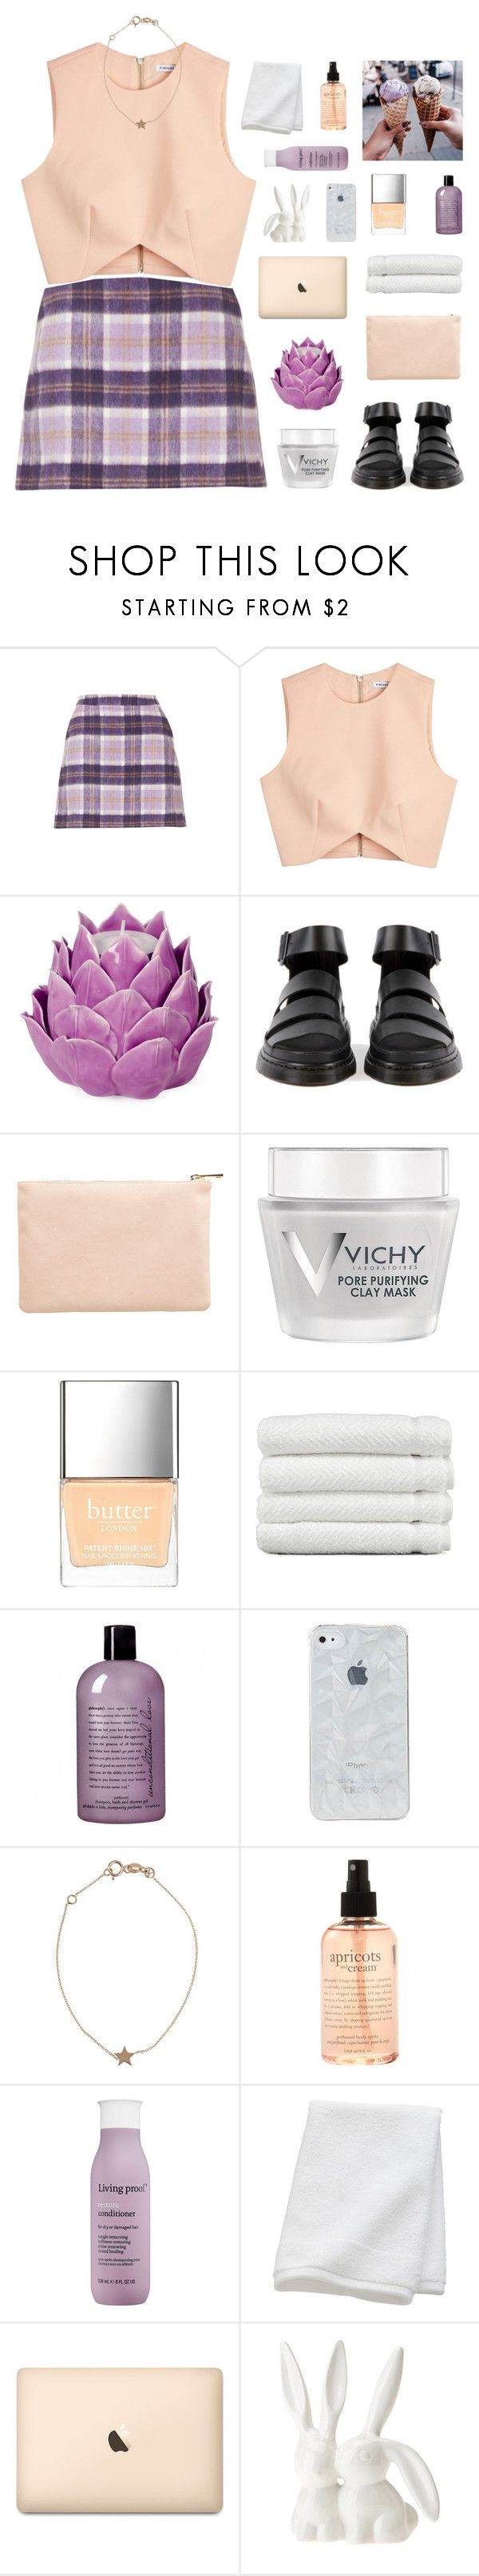 """tell 'em that it's my birthday"" by lucidmoon ❤ liked on Polyvore featuring Topshop, Finders Keepers, Zara Home, Miss Selfridge, Vichy, Butter London, Linum Home Textiles, philosophy, Kismet and Living Proof"